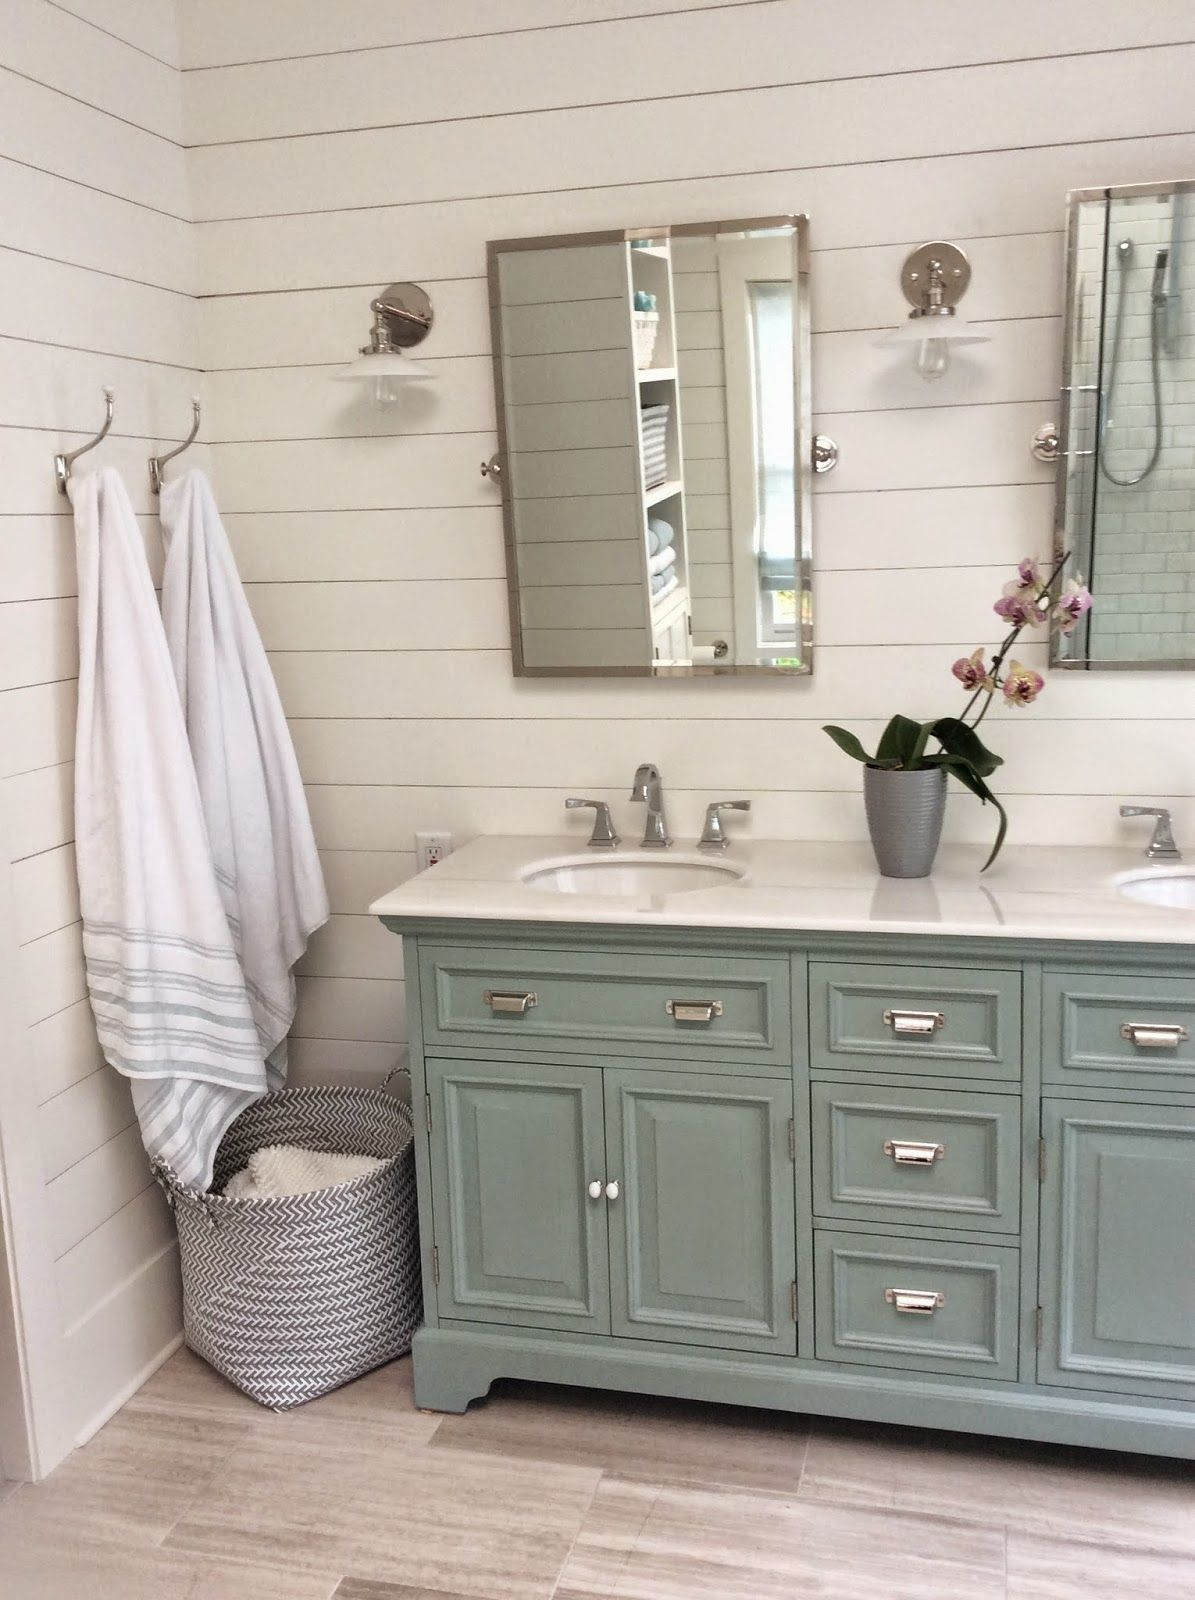 Bathroom cabinets in blue cottage and vine friday link for Cottage bathroom ideas renovate